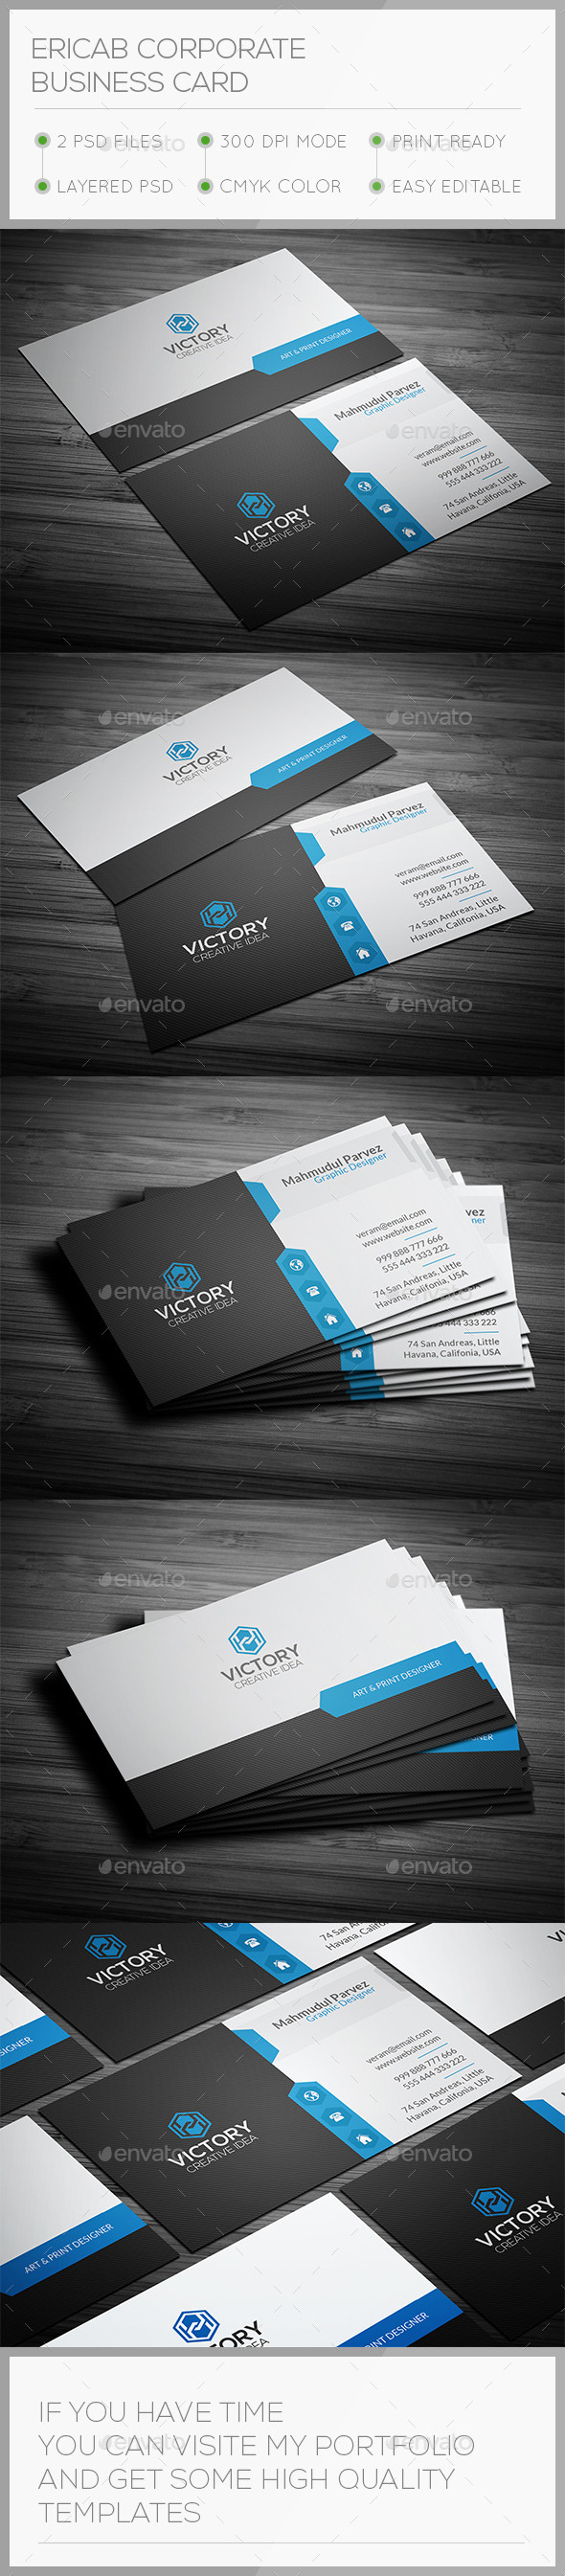 Ericab Corporate Business Card